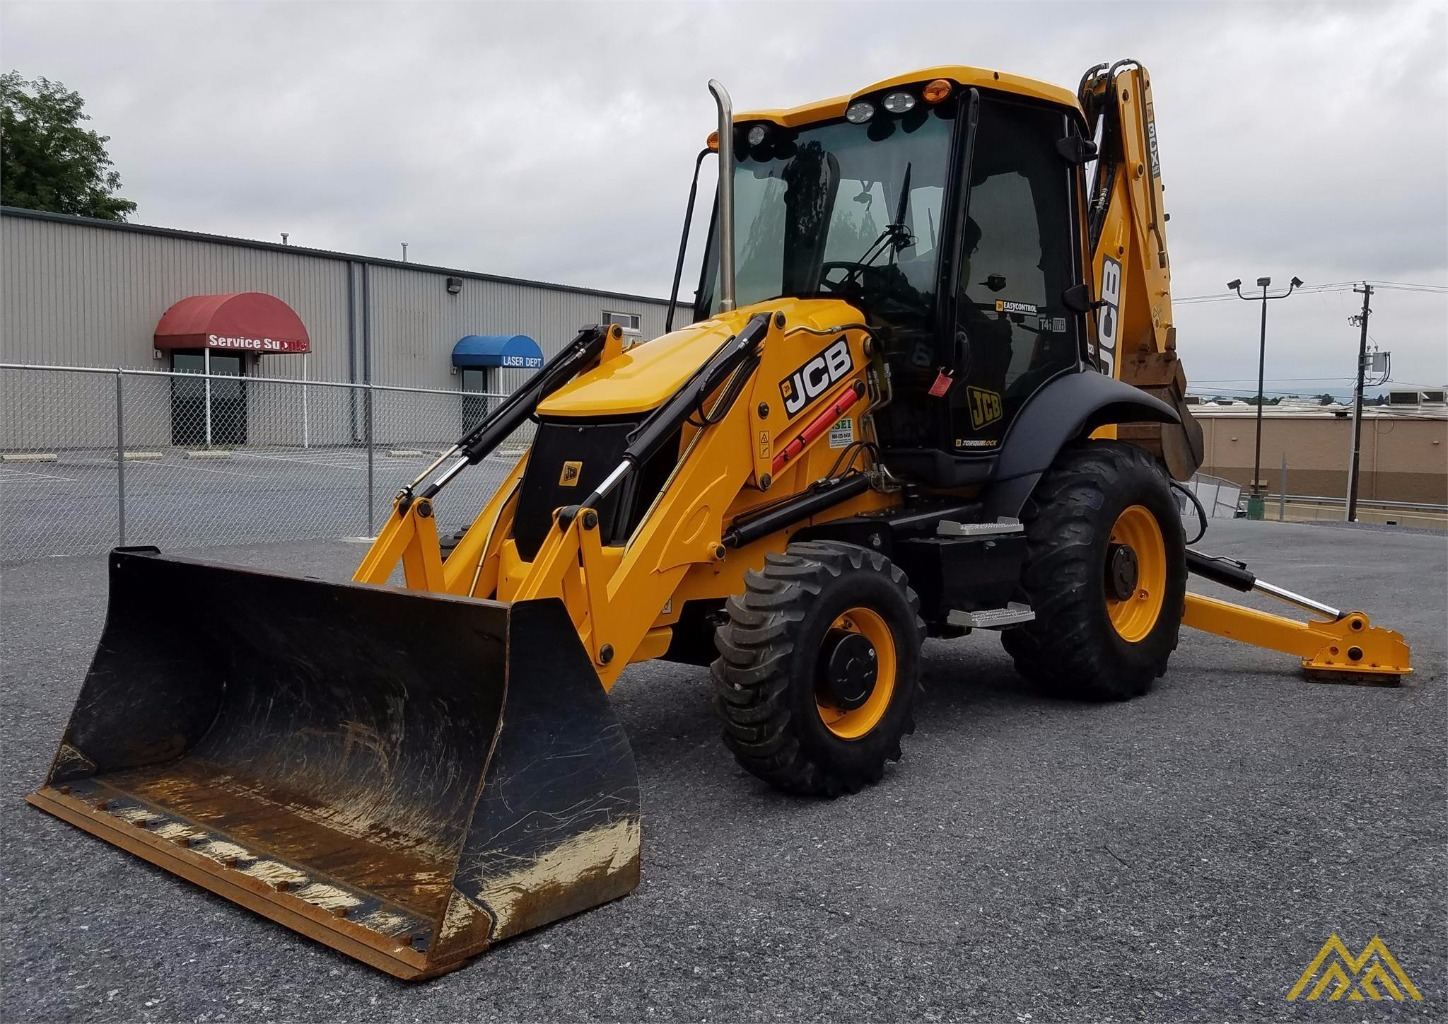 JCB 3CX14 Backhoe Loader 5